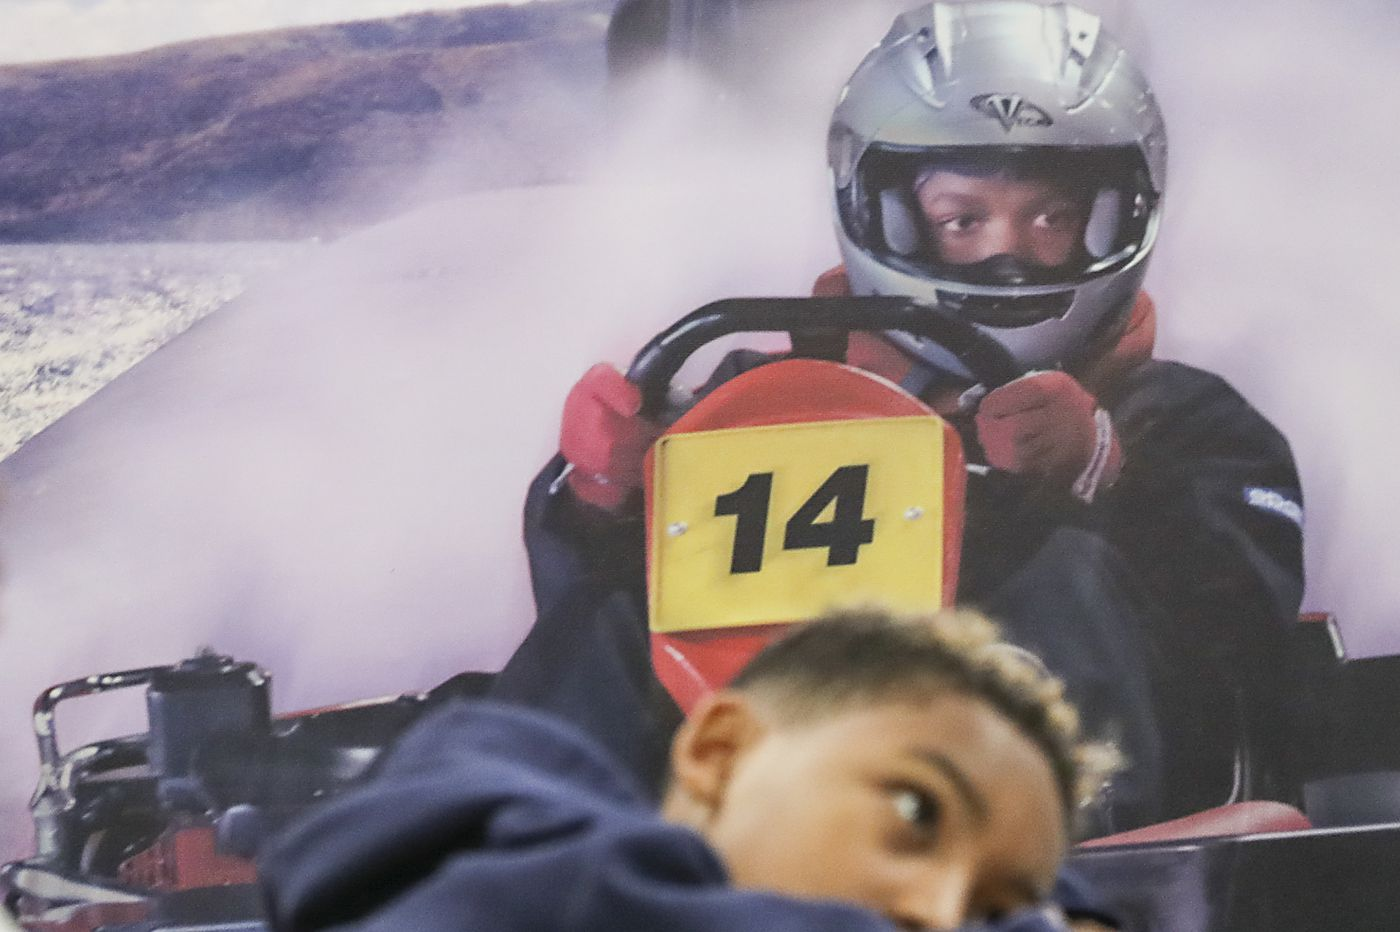 The Urban Youth Racing School is about more than fast cars